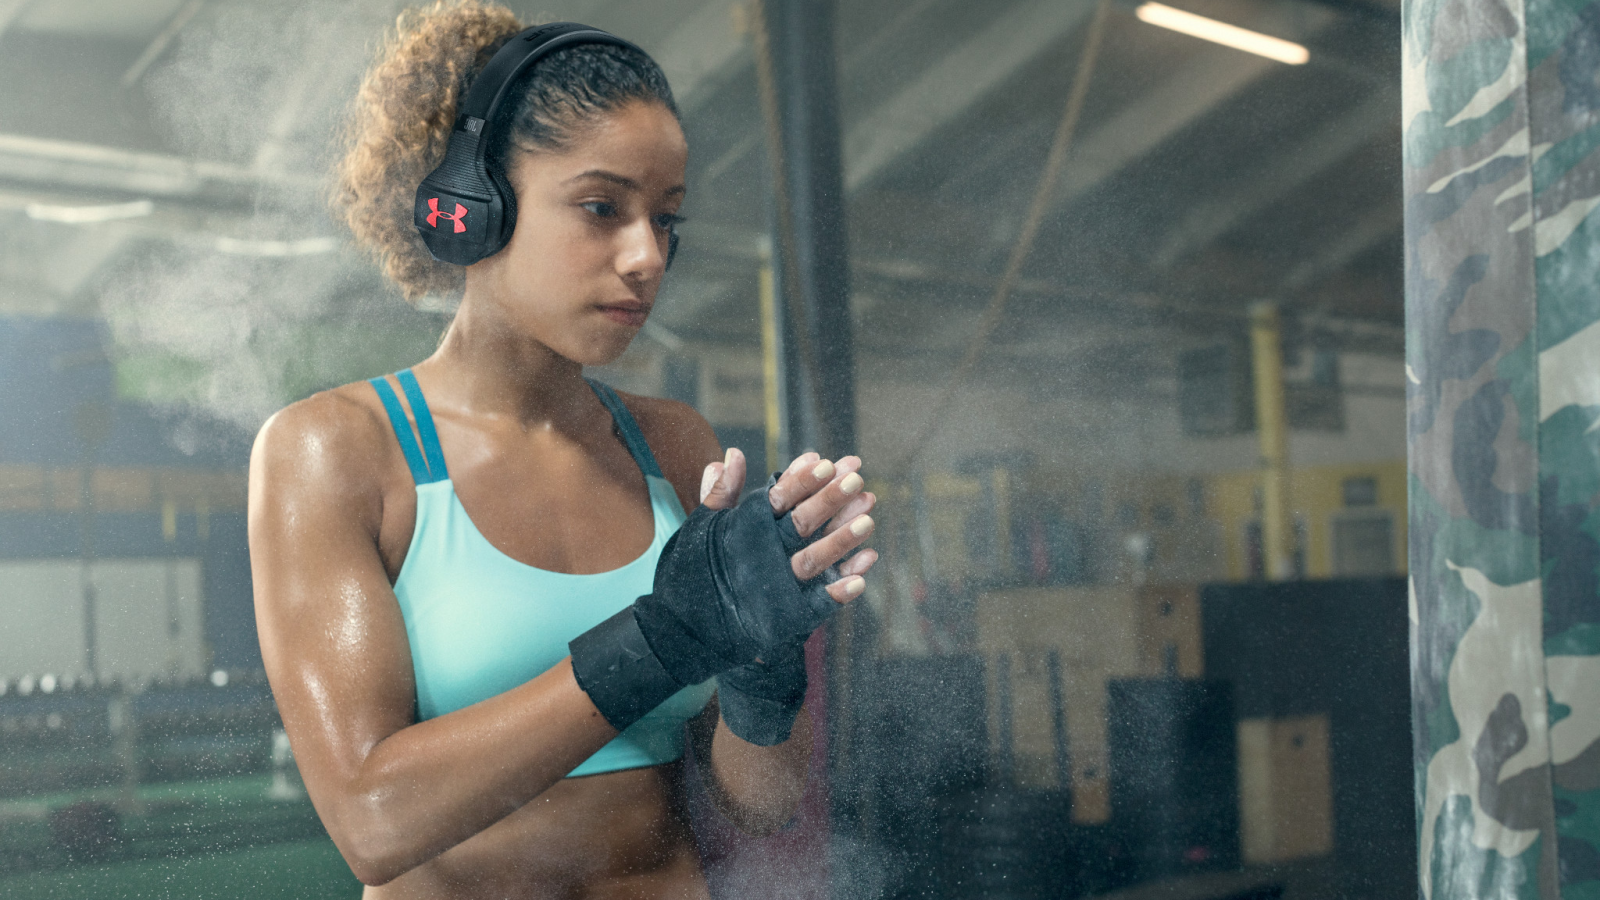 8e6a034d0eb The beat drops today with the UA Sport Wireless Train headphones available  for pre-sale now for $199 at UA.com, JBL.com and available for purchase at  select ...